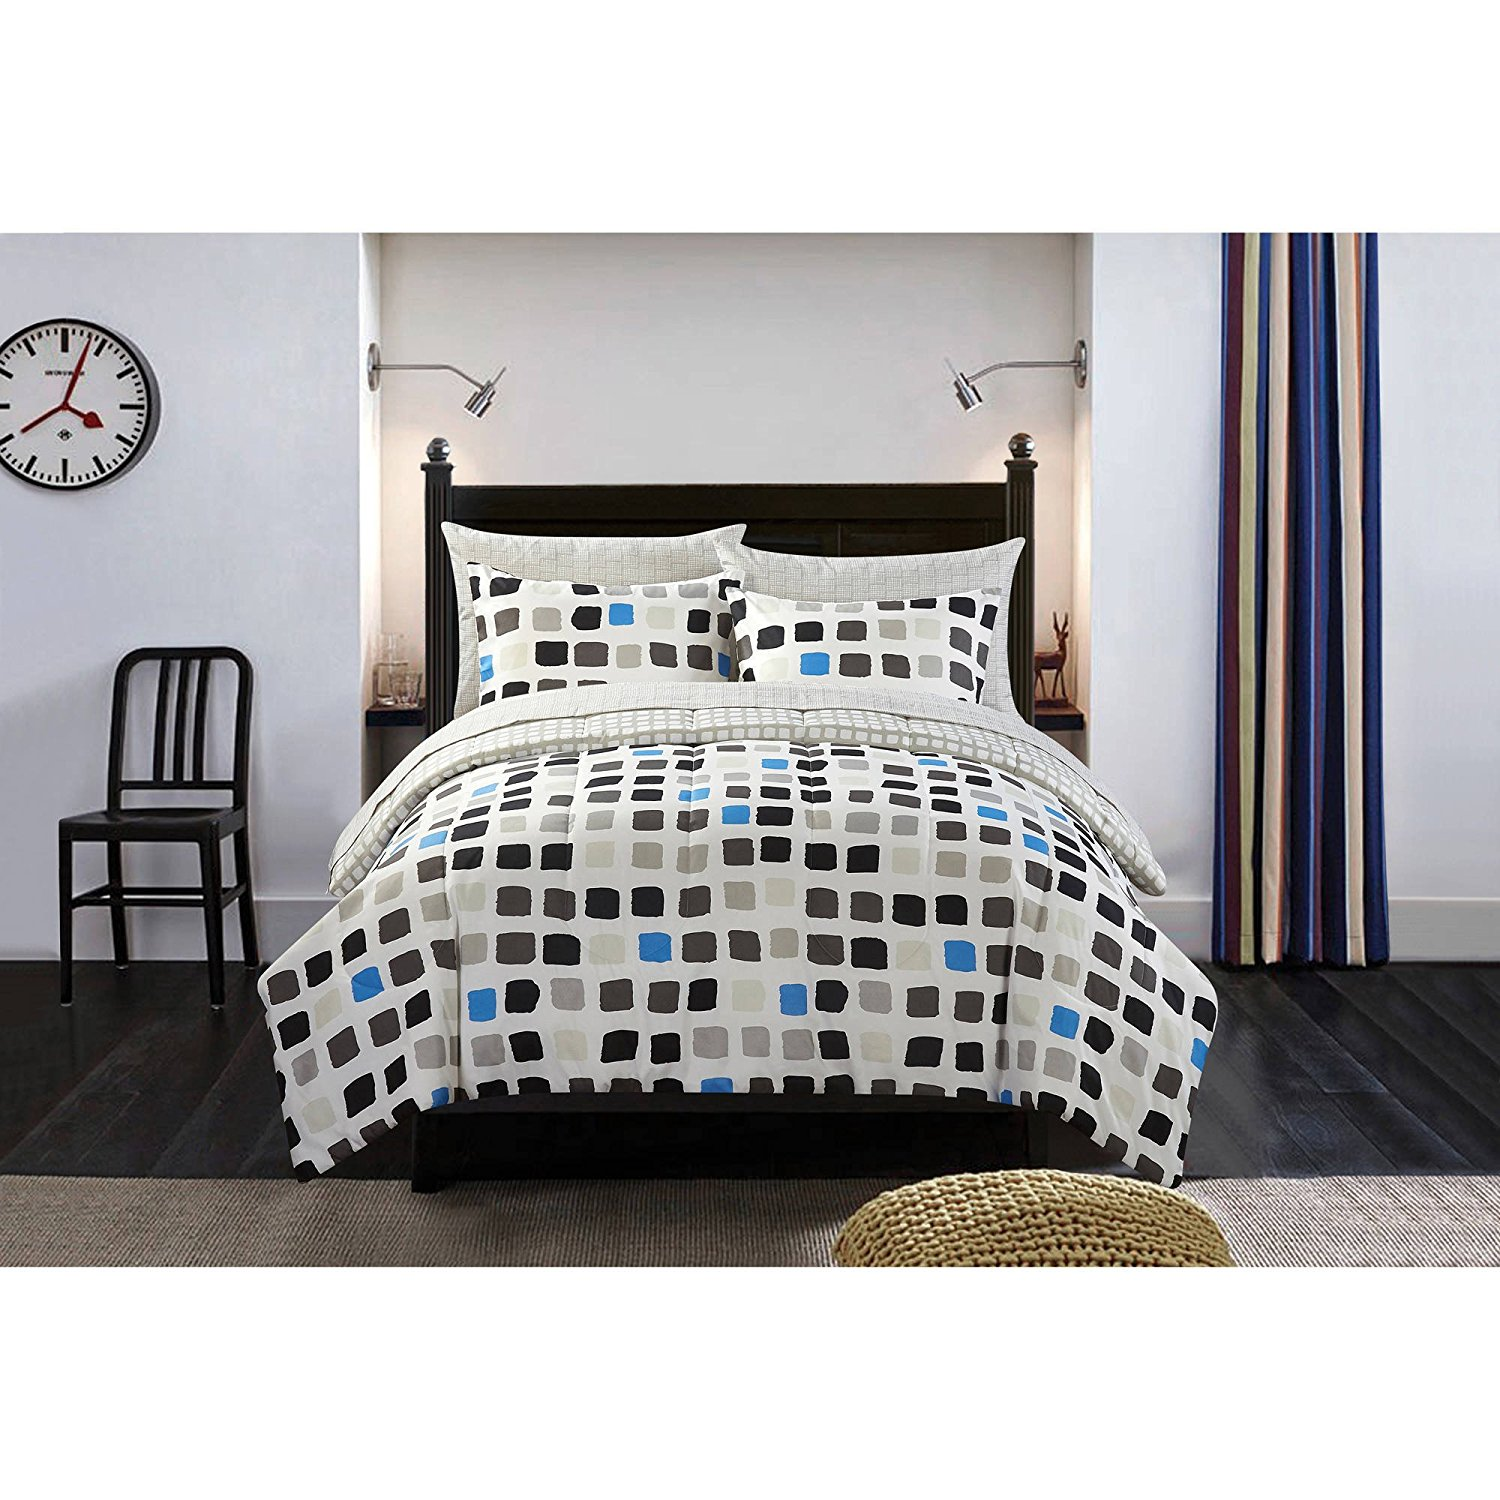 5 Piece Black White Metro Block Comforter Set Twin Twin Xl, Dark Black Blue Grey Pixel Minecraft Printed Teen Themed, Reversible Chic Grey Silver Block Line Design Kids Bedding For Bedroom, Polyester